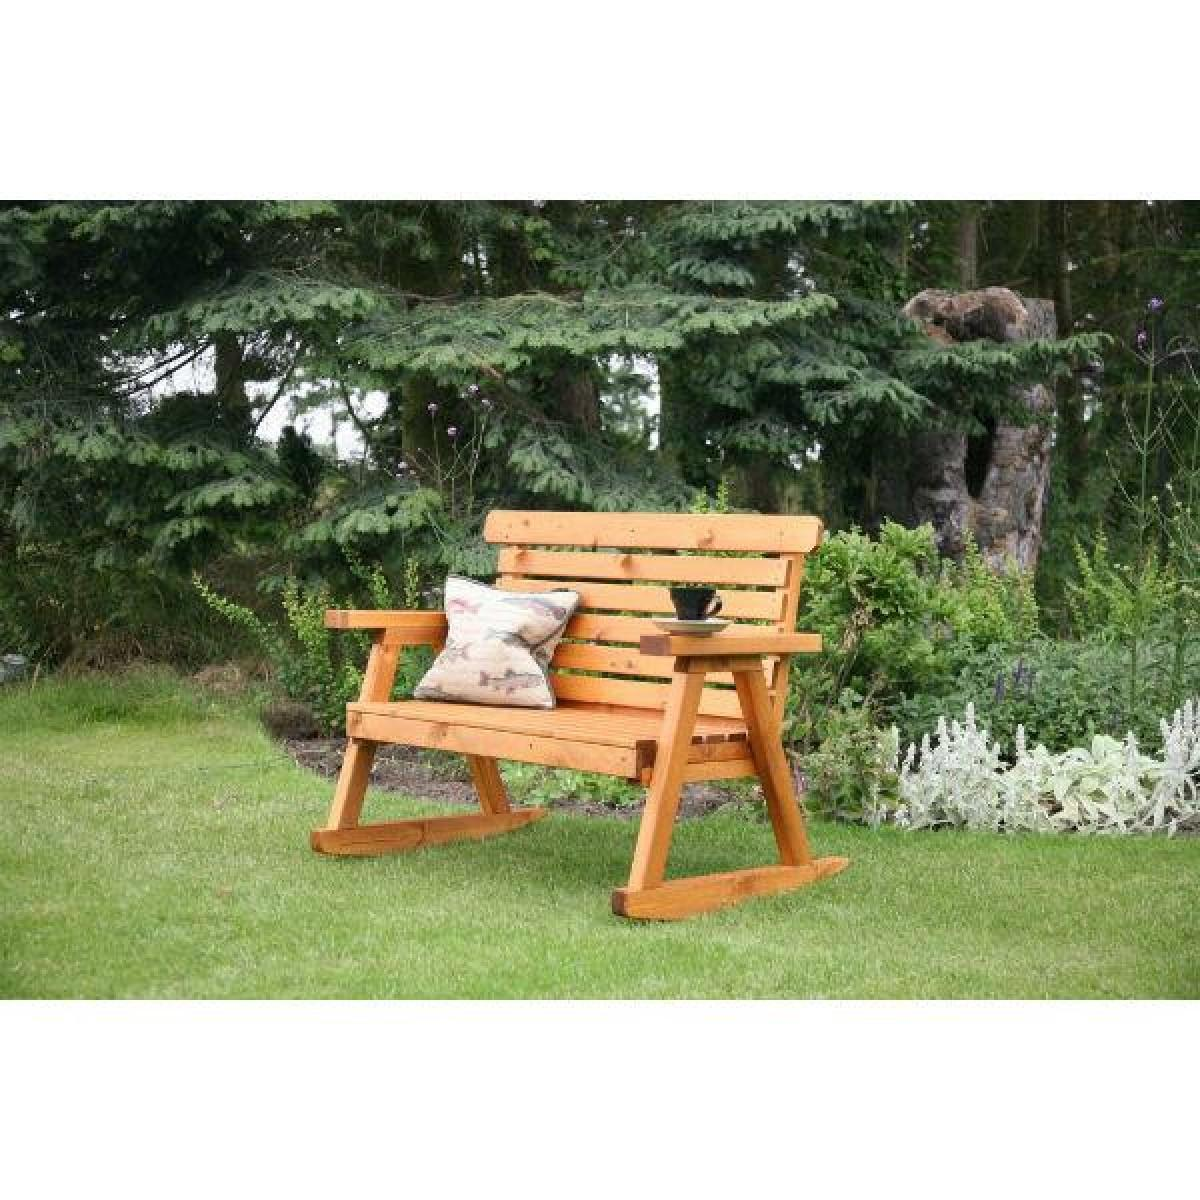 garden furniture dublin - Garden Furniture Dublin